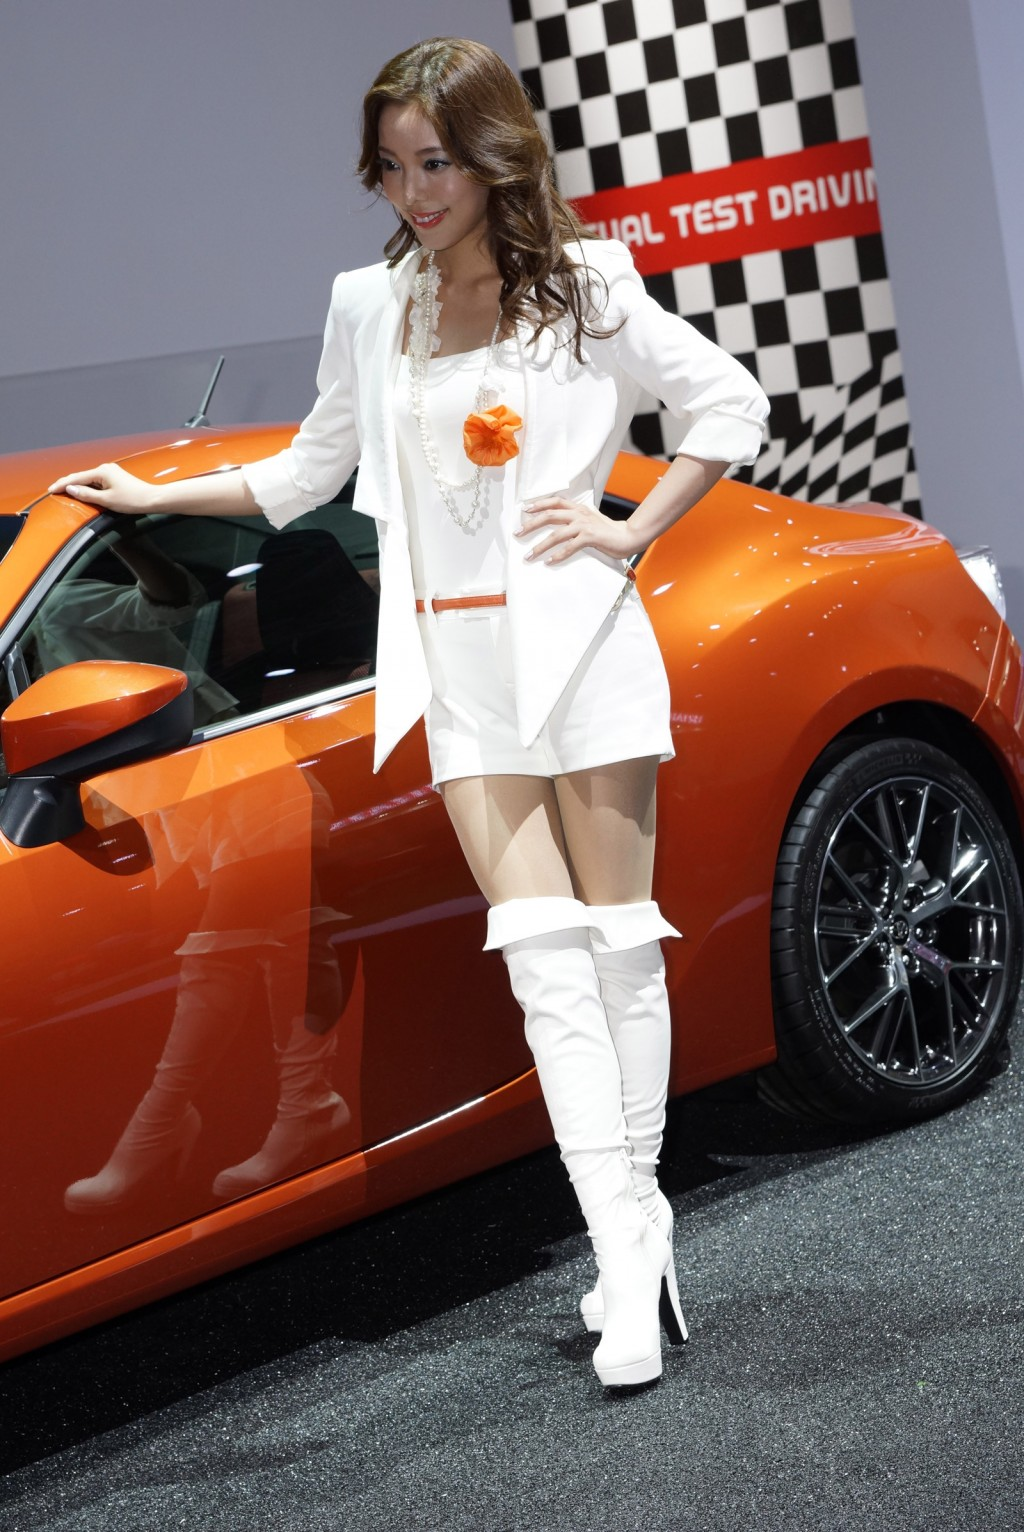 http://images.thecarconnection.com/lrg/toyota-gt-86-live-photos_100371919_l.jpg